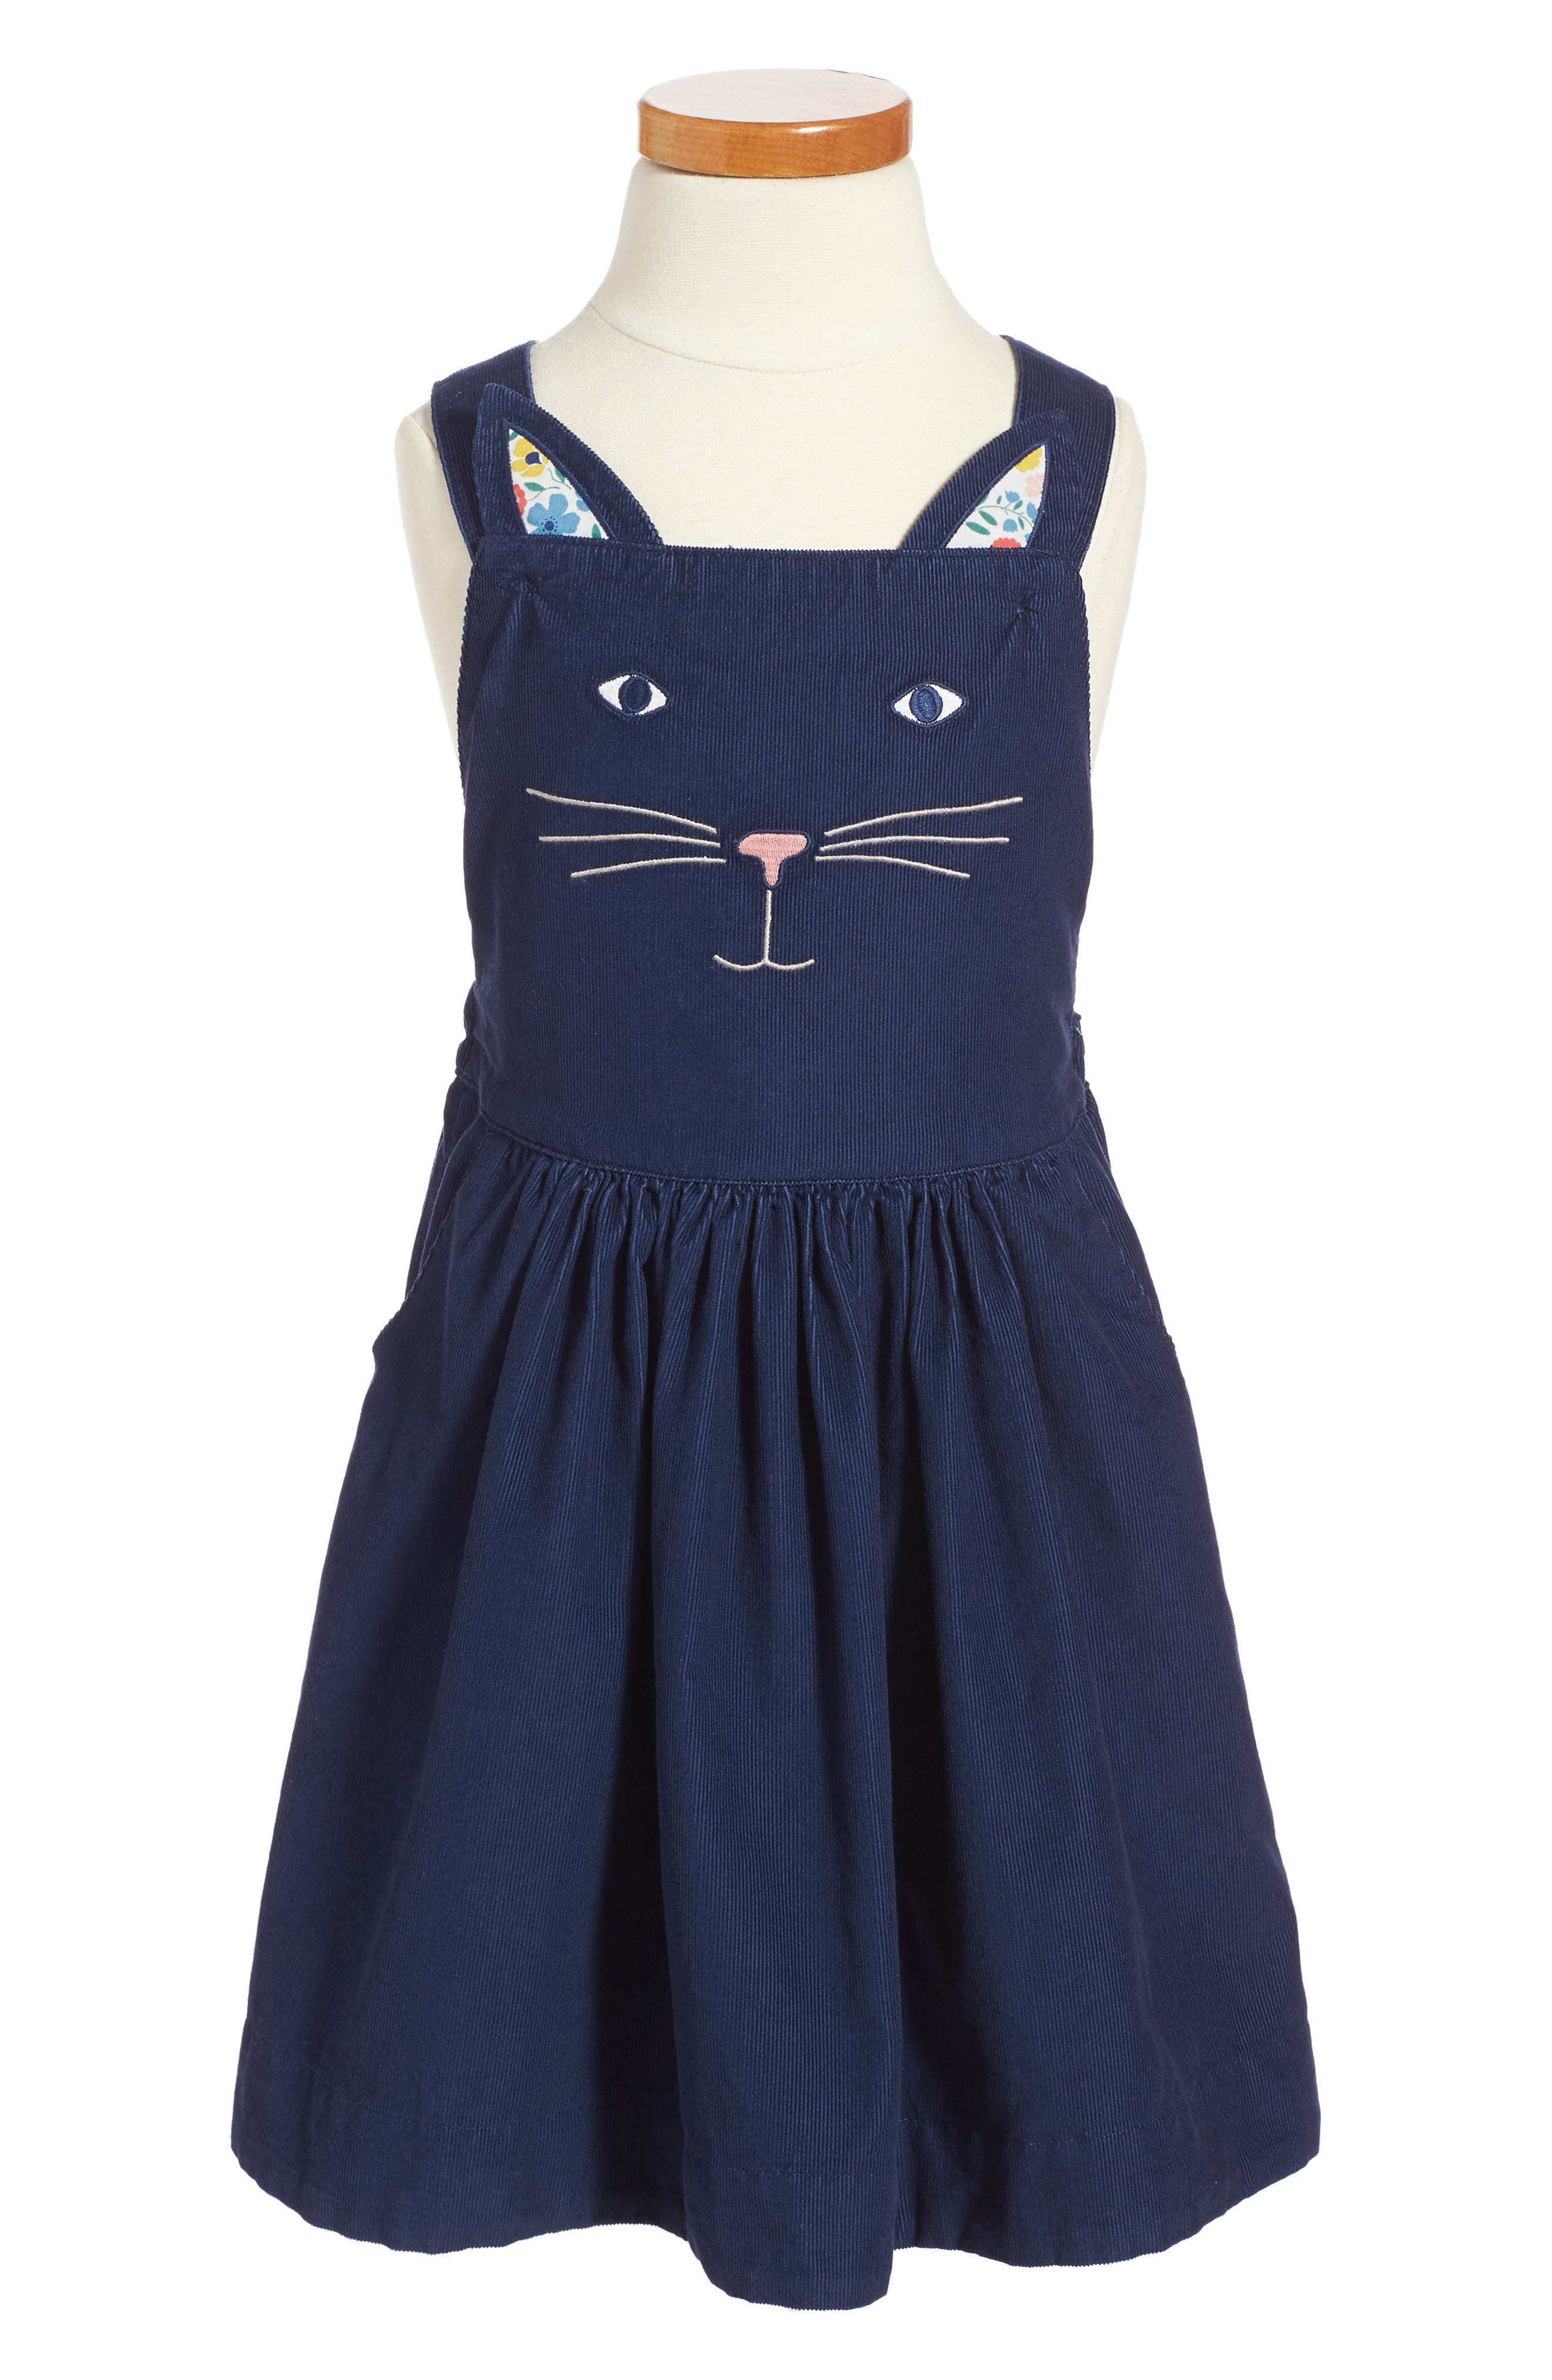 MINI BODEN Embroidered Cat Dungaree Dress